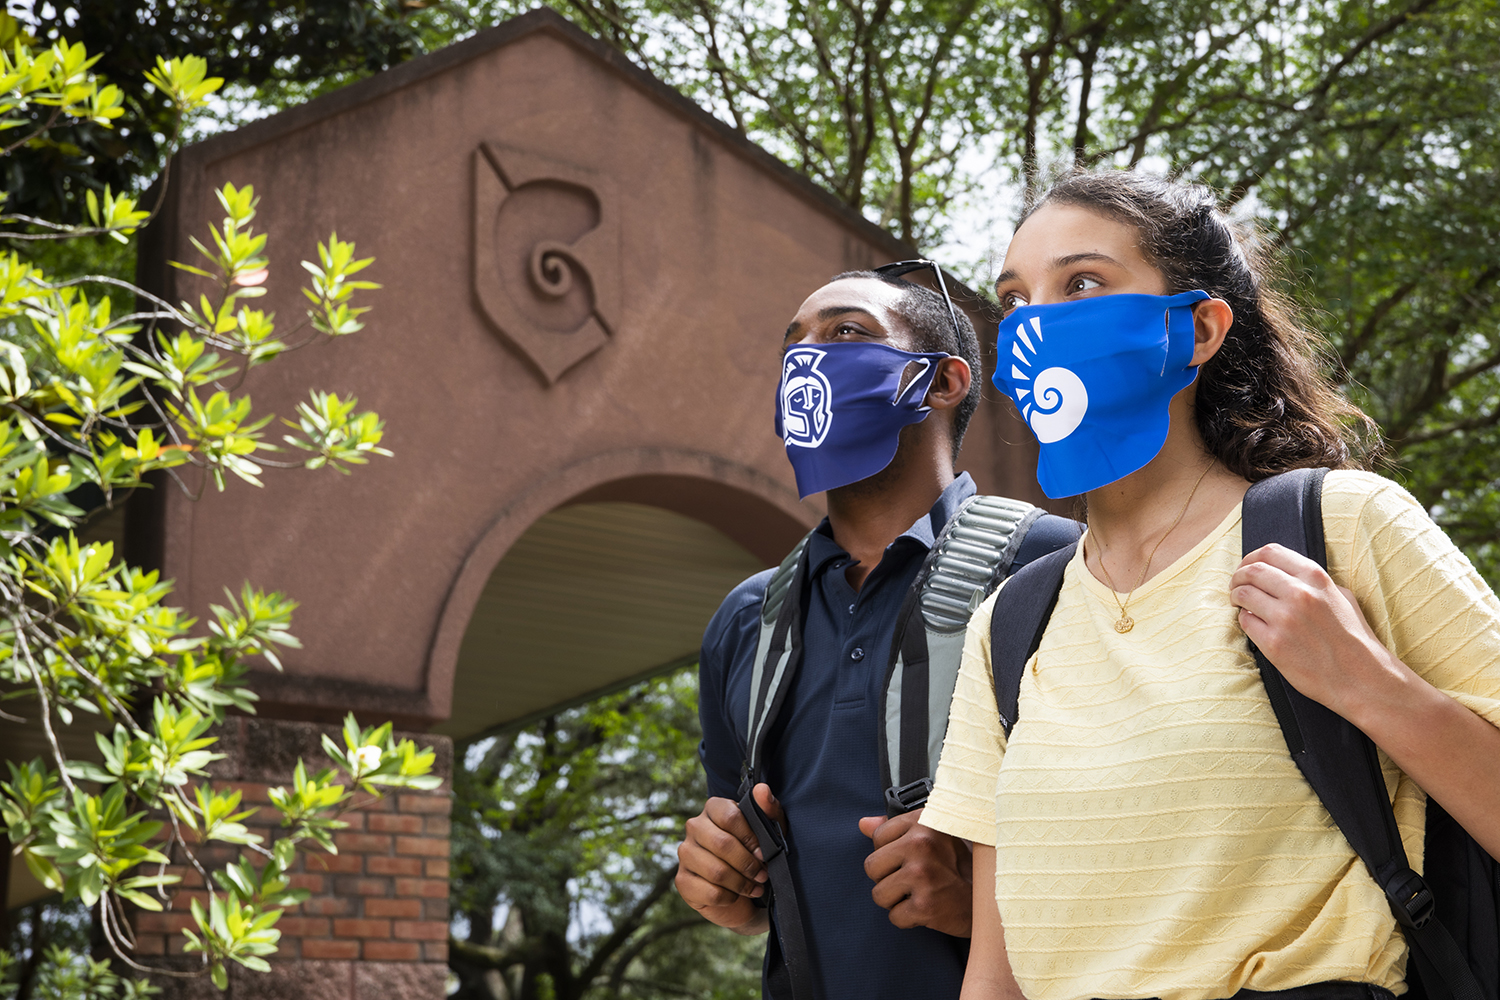 UWF students wearing face coverings